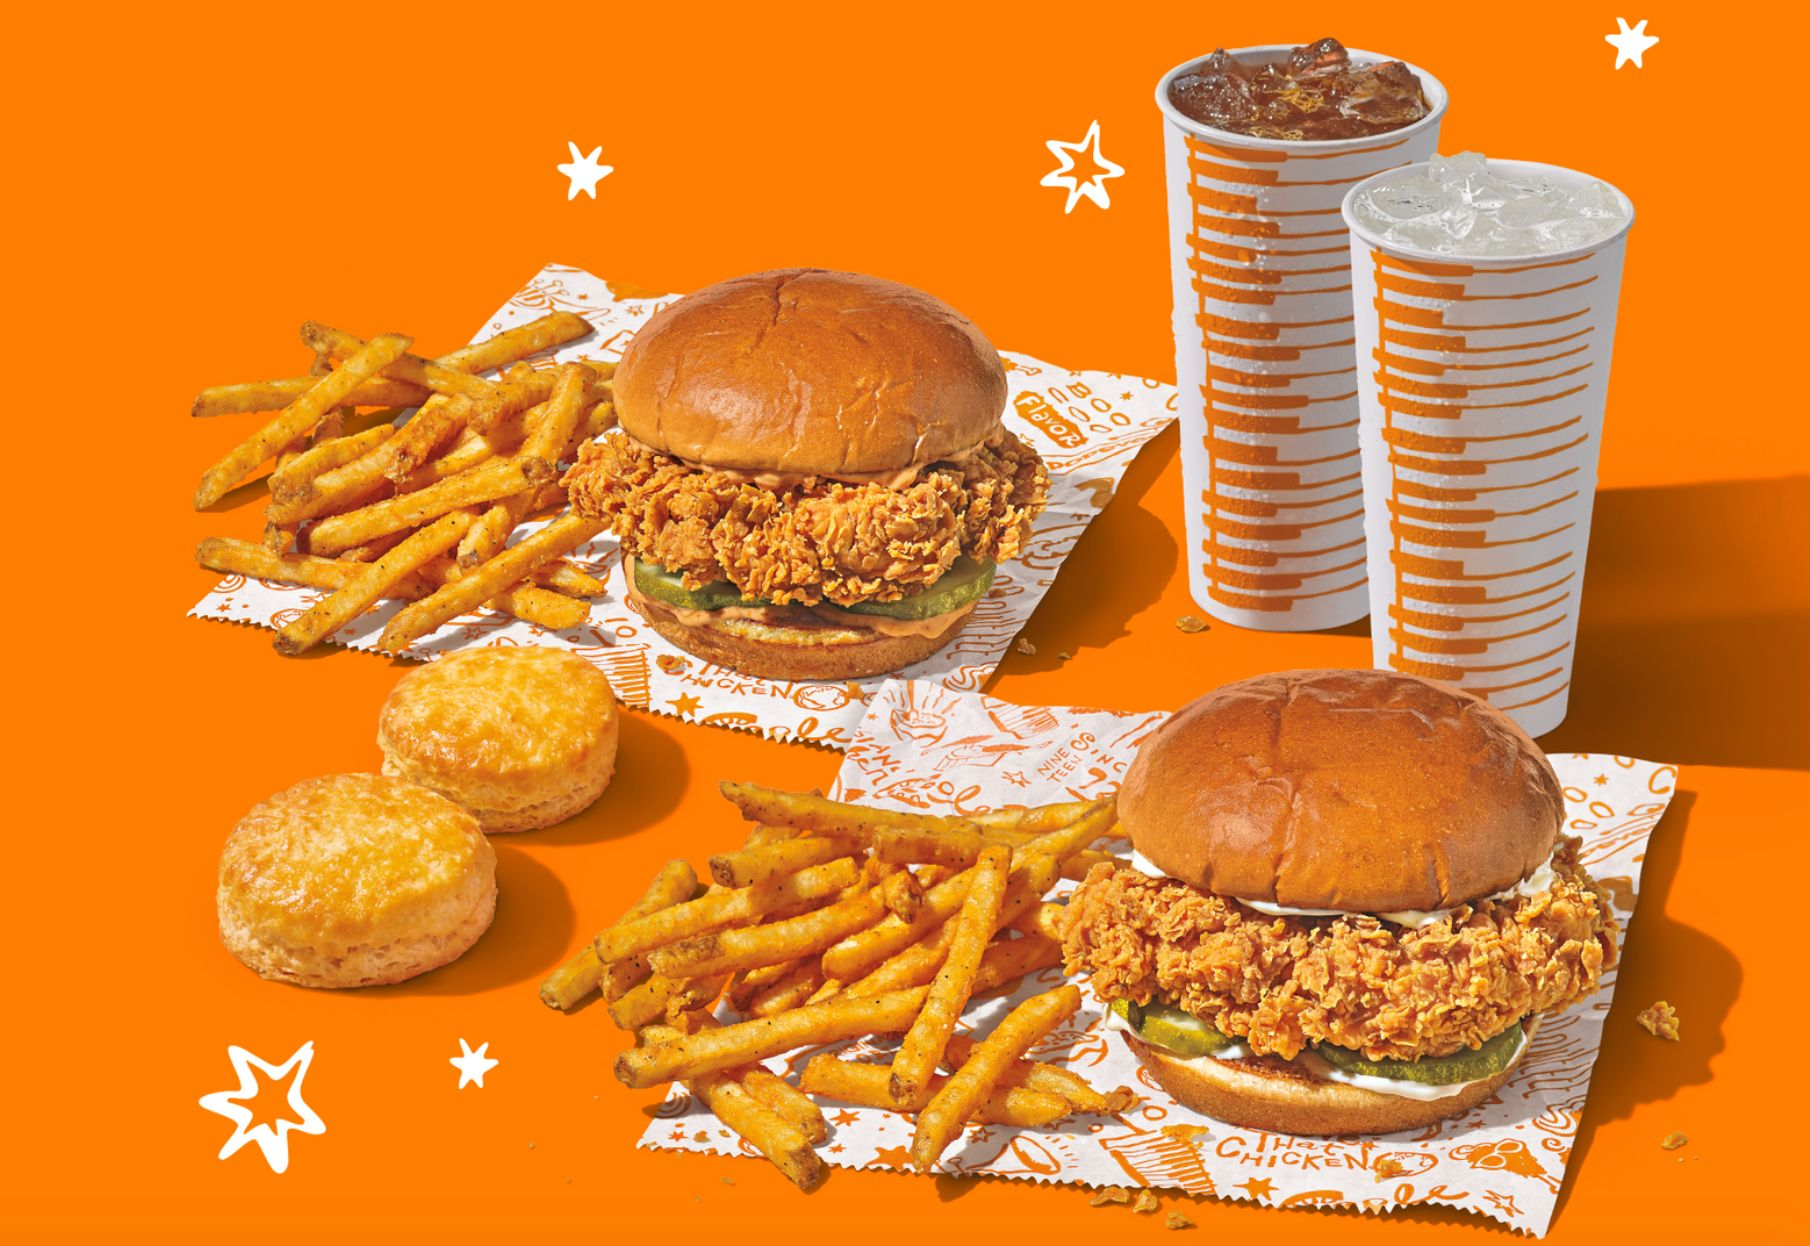 Popeyes Chicken Introduces their New $18 Double Sandwich Combo with Sandwiches, Sides & More